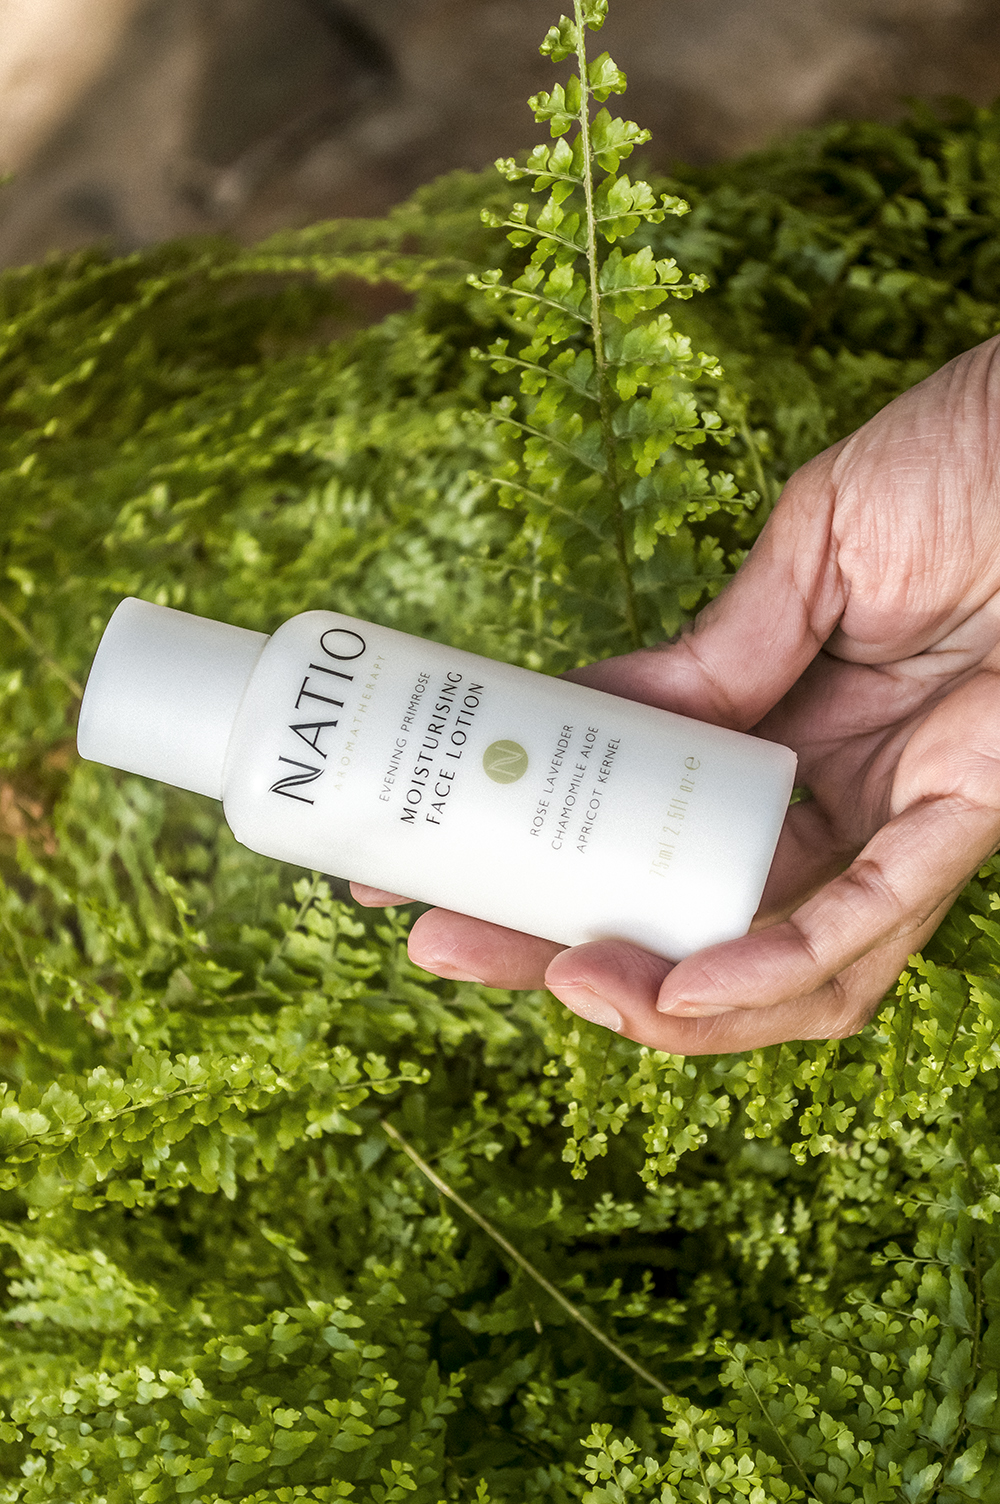 Natio Product Review, Skincare Products, Skincare, Beauty, Beauty Blogger-5